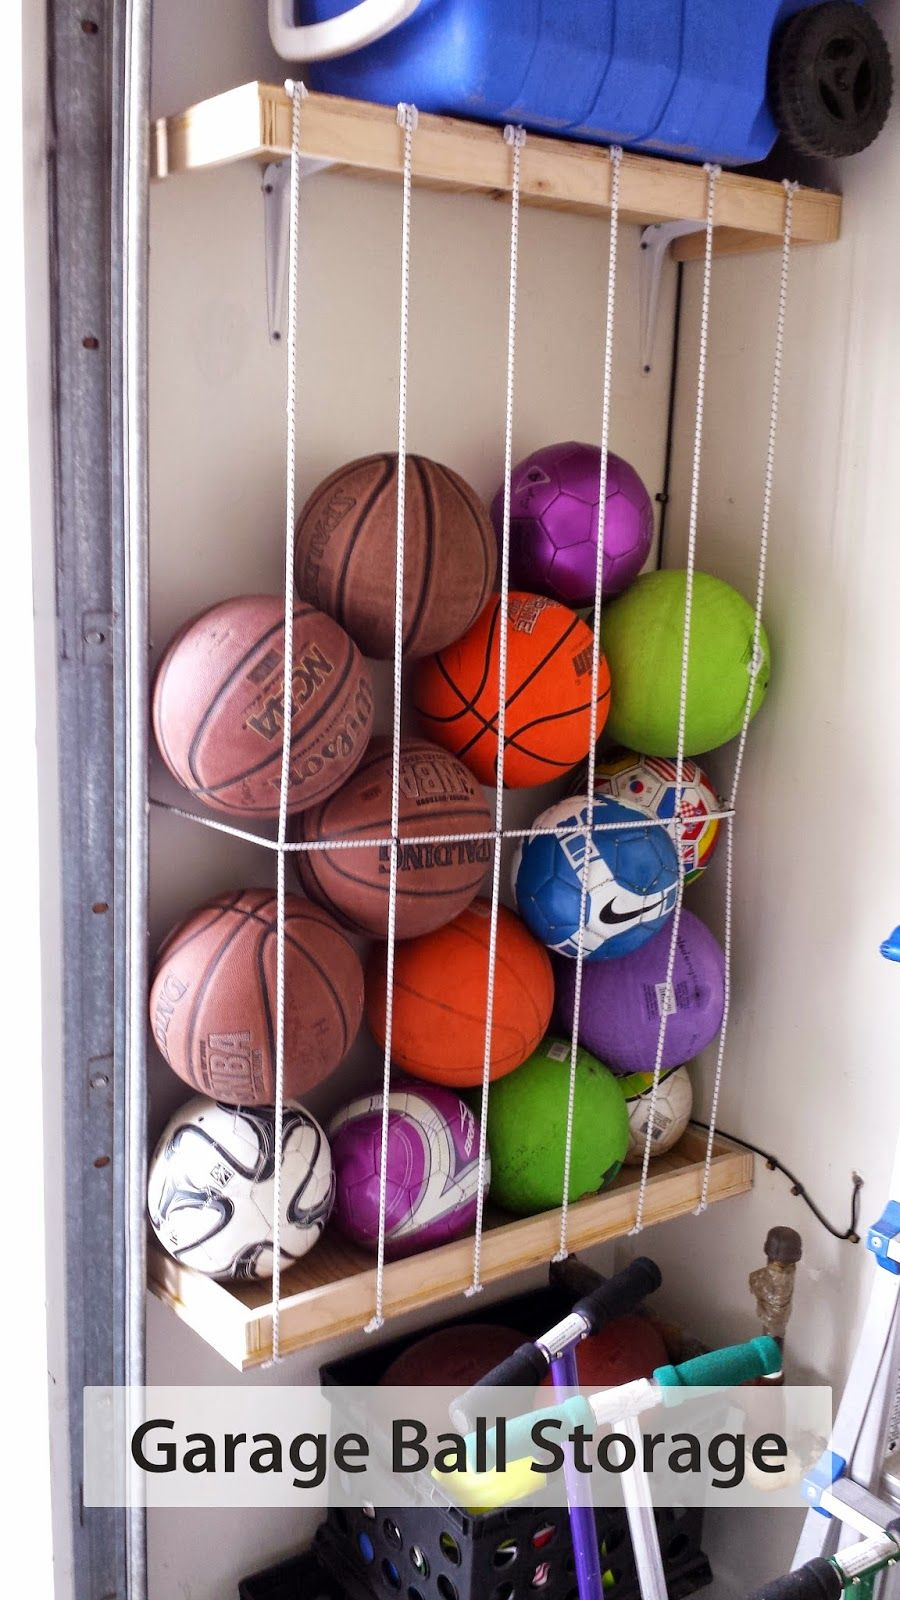 Bon Garage Ball Storage | Bloggus Hedengrenus